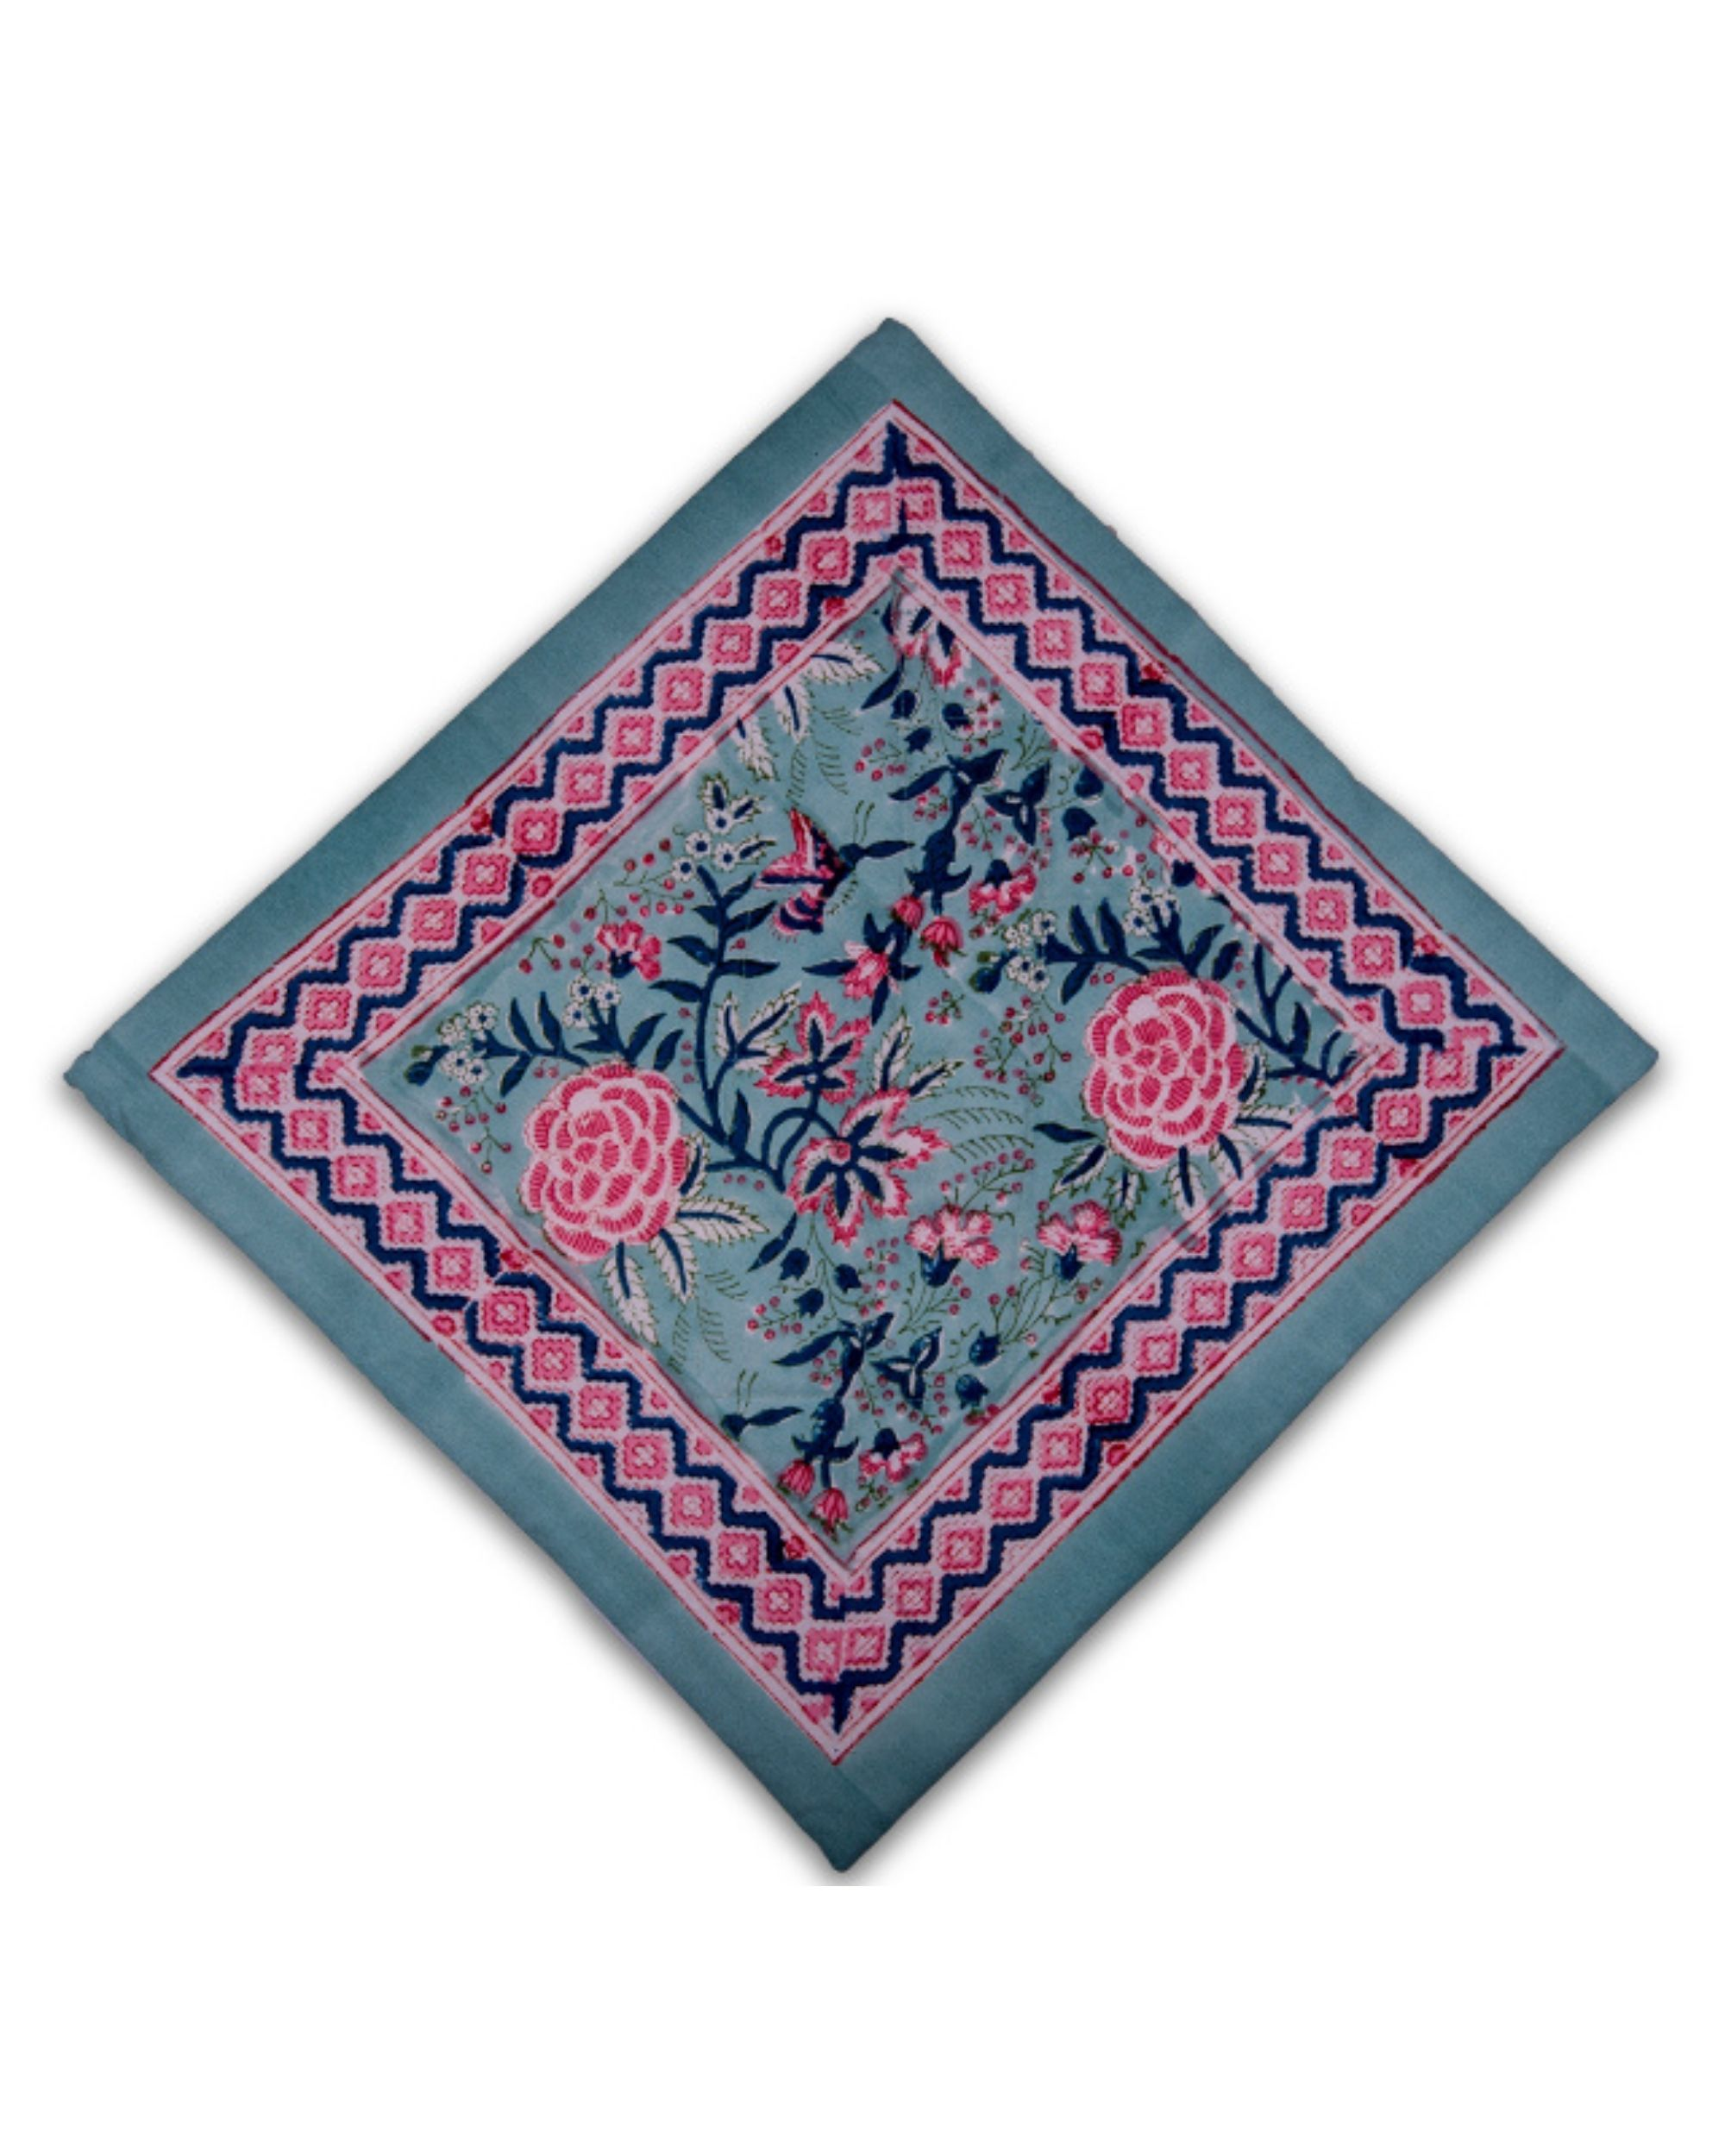 Green and pink floral printed quilted cushion covers - set of 2